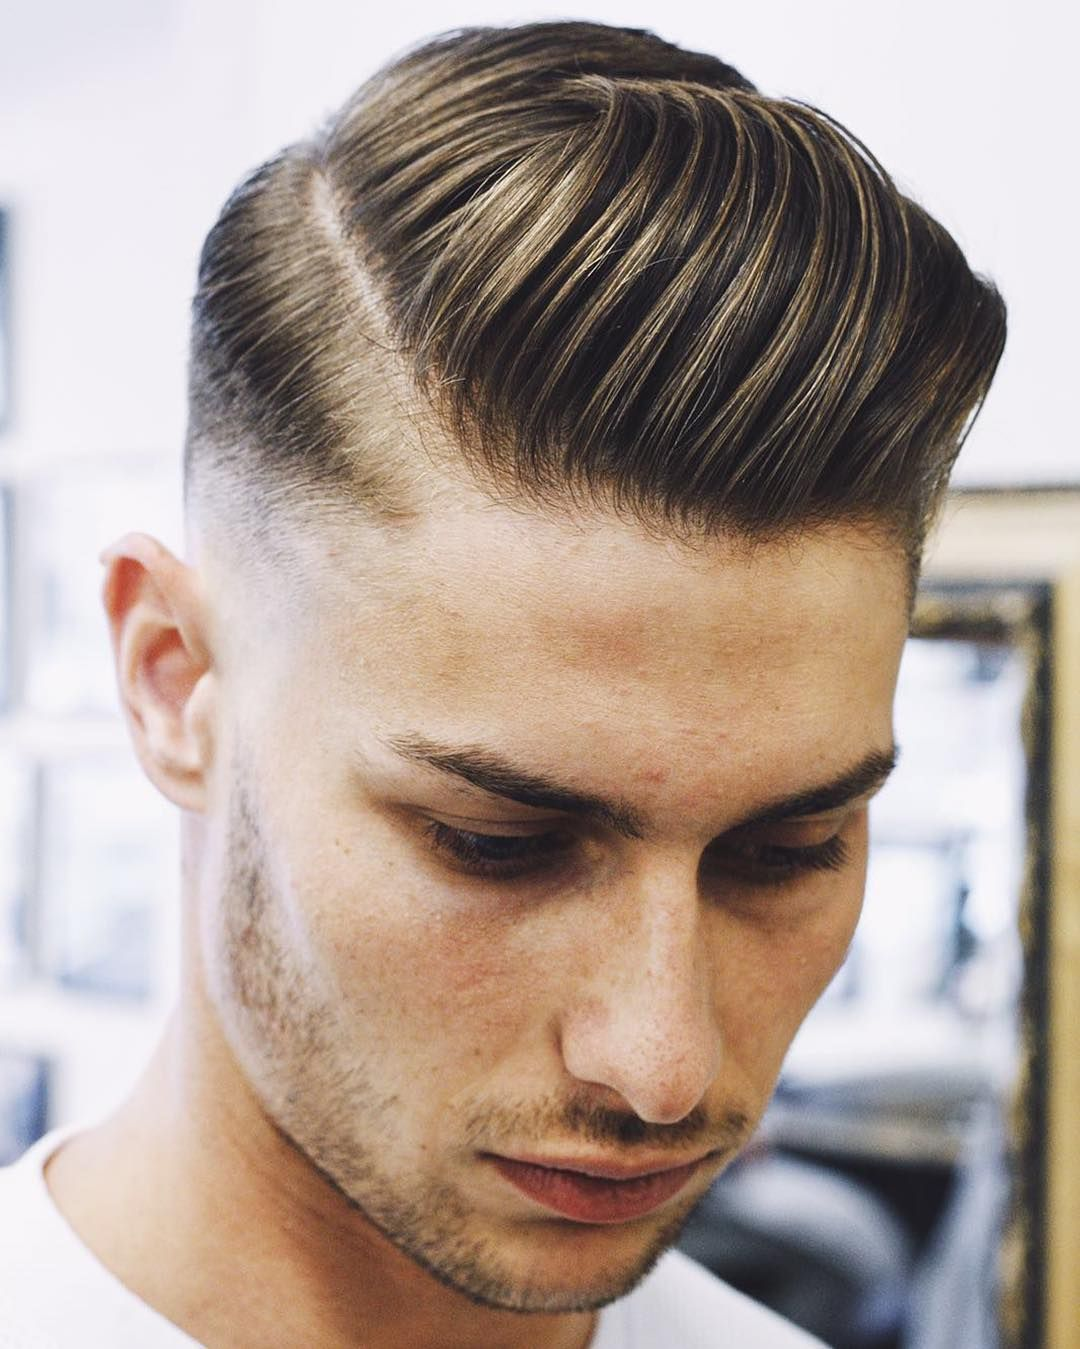 25 popular haircuts for men 2019 | fade side part | mens